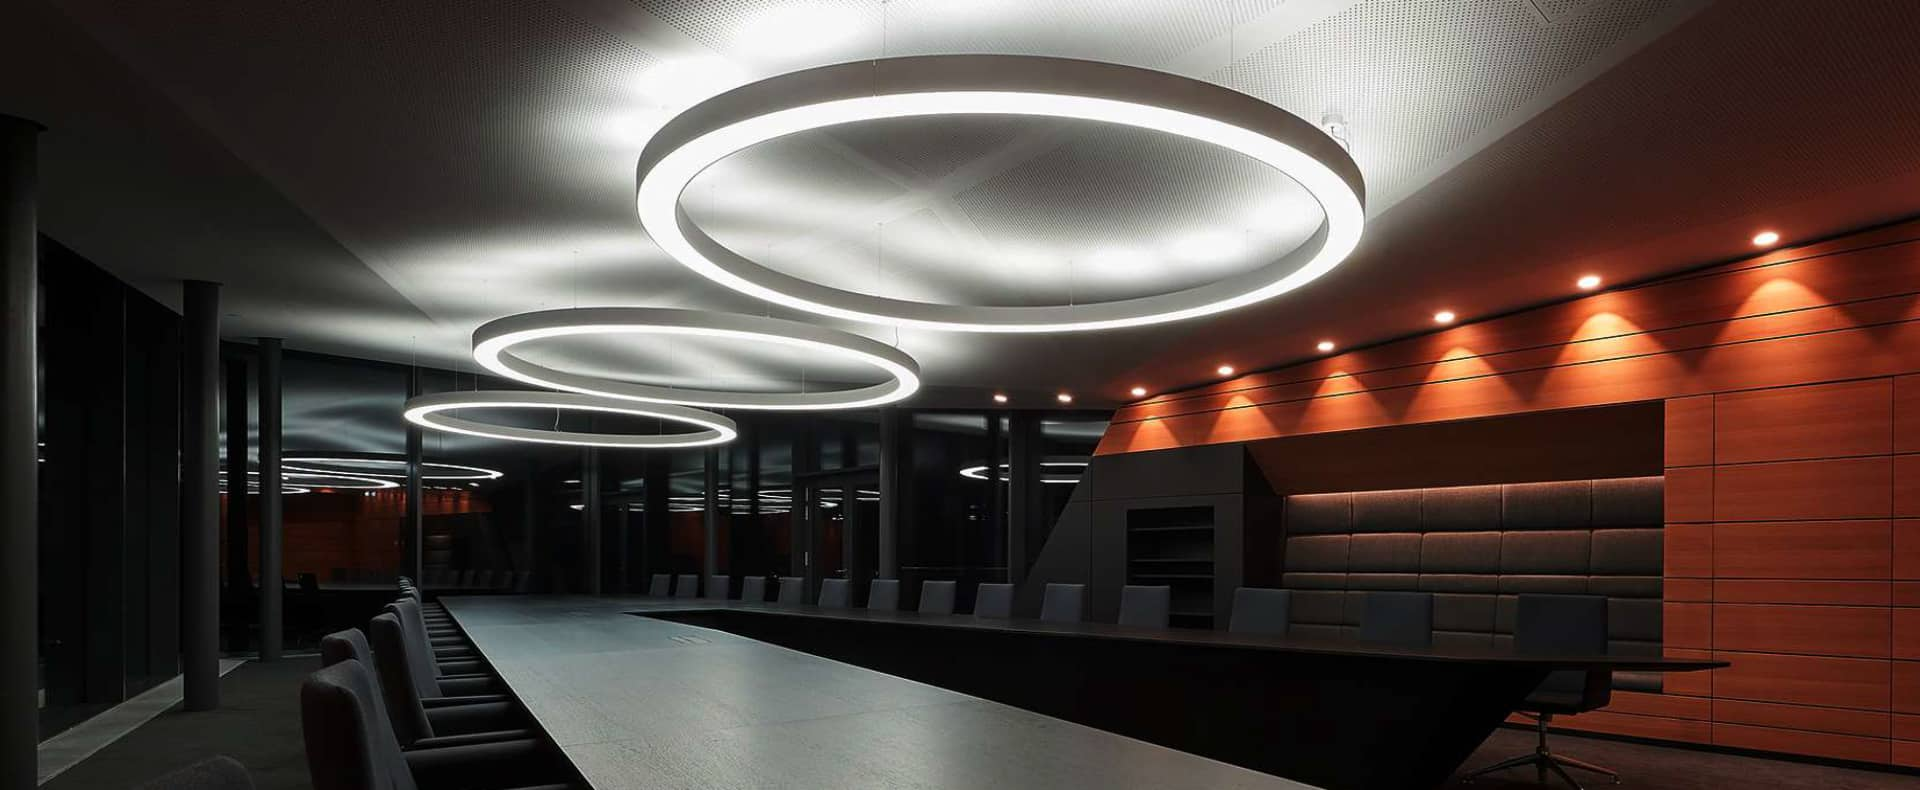 Circular Linear Lighting